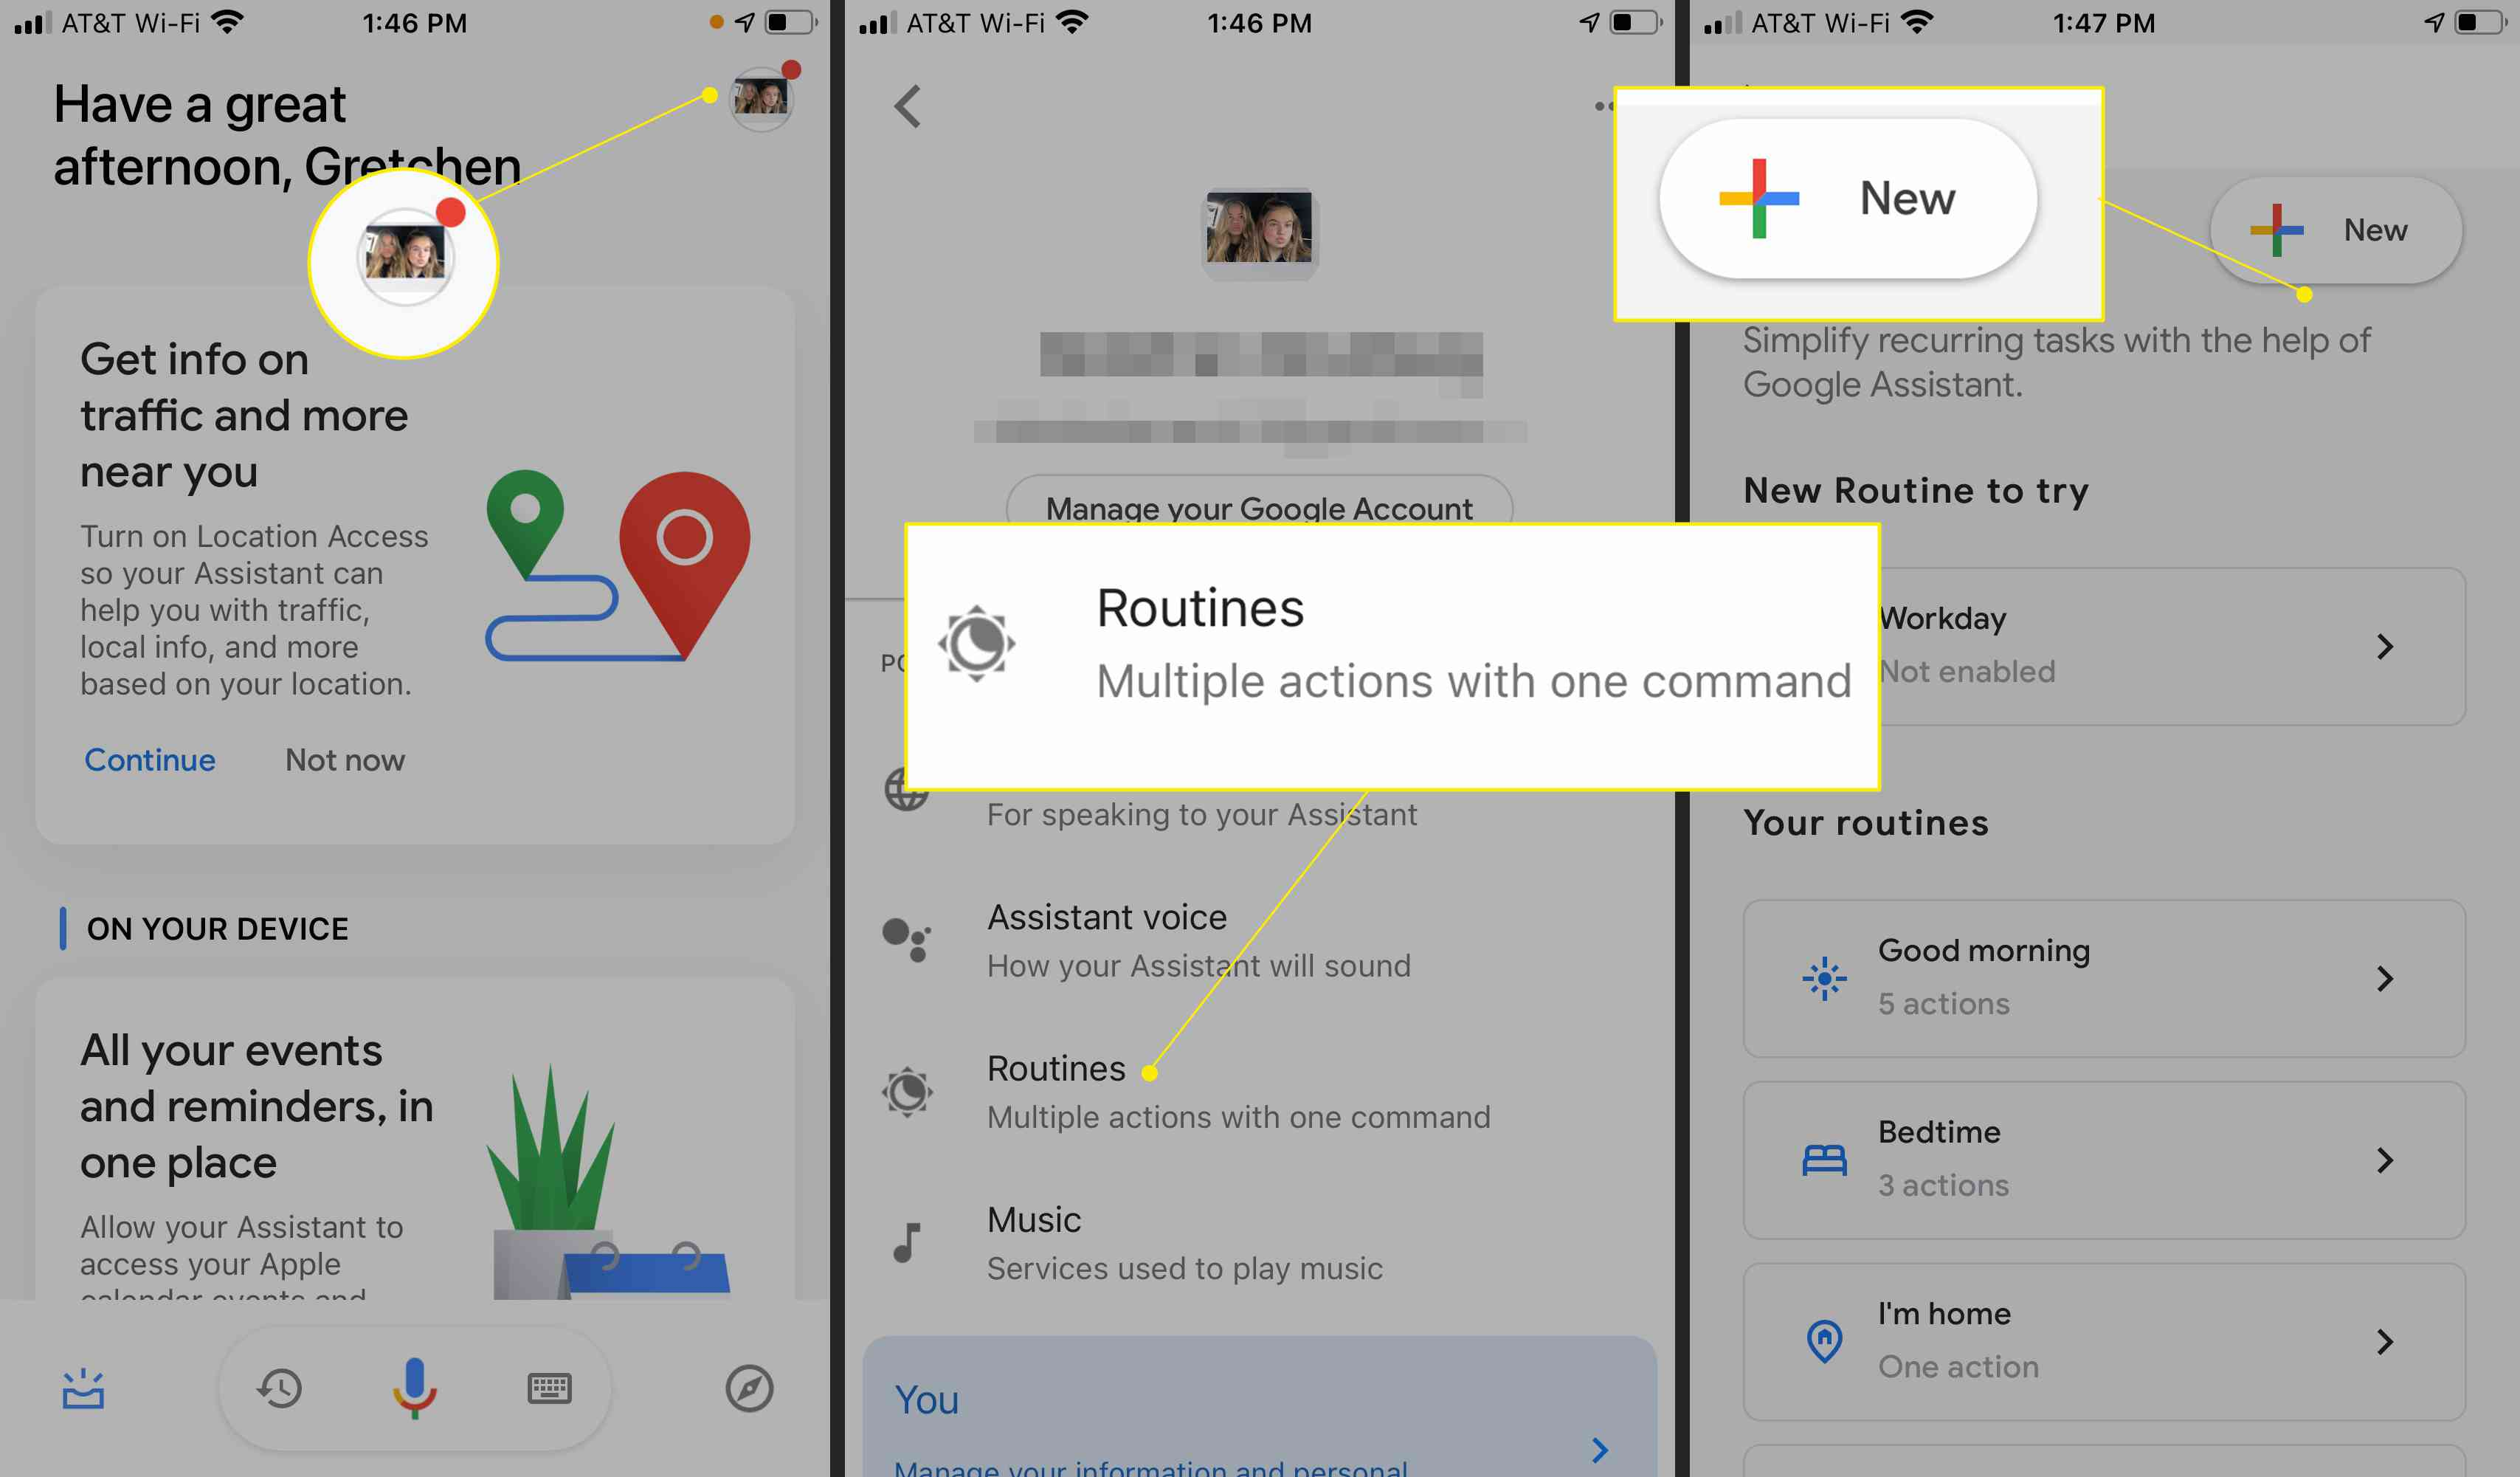 Google Assistant app with Routines and New highlighted